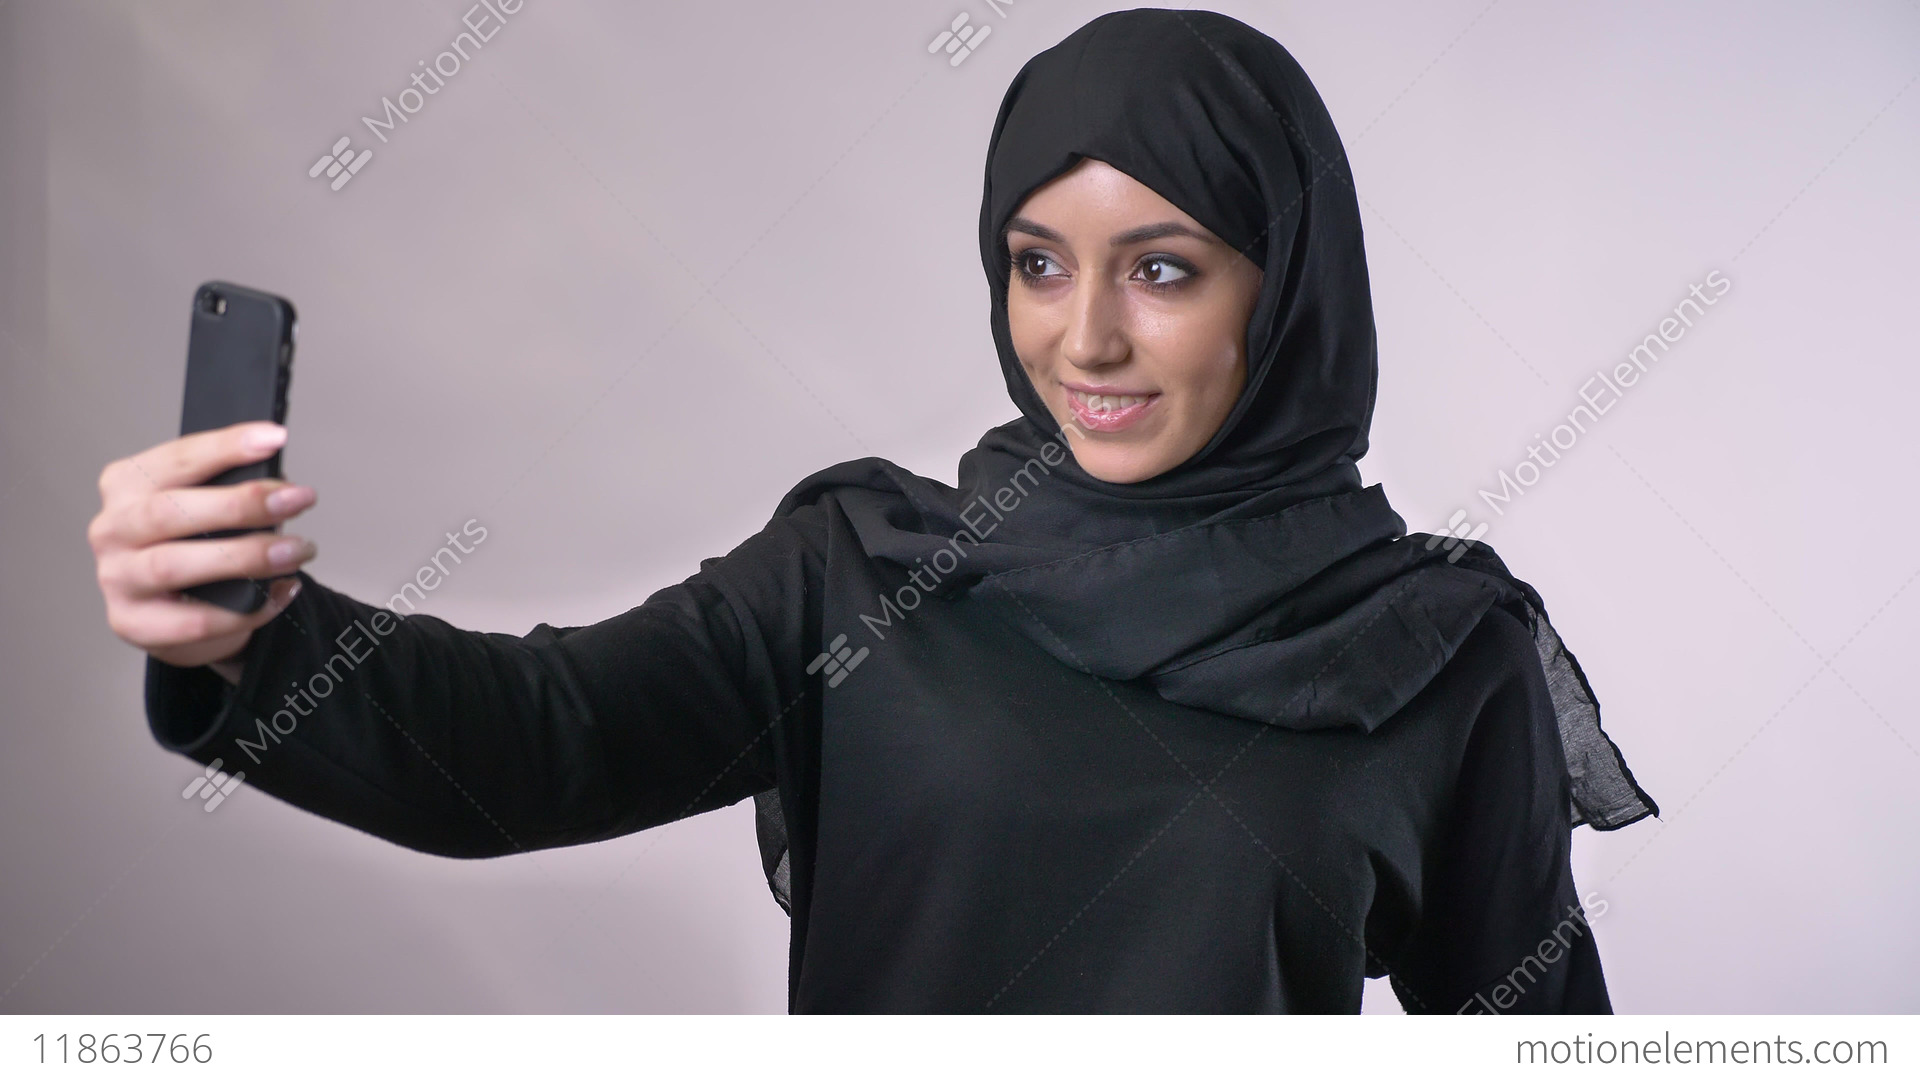 Young Beautiful Muslim Girl In Hijab Has A Video Call On Smartphone